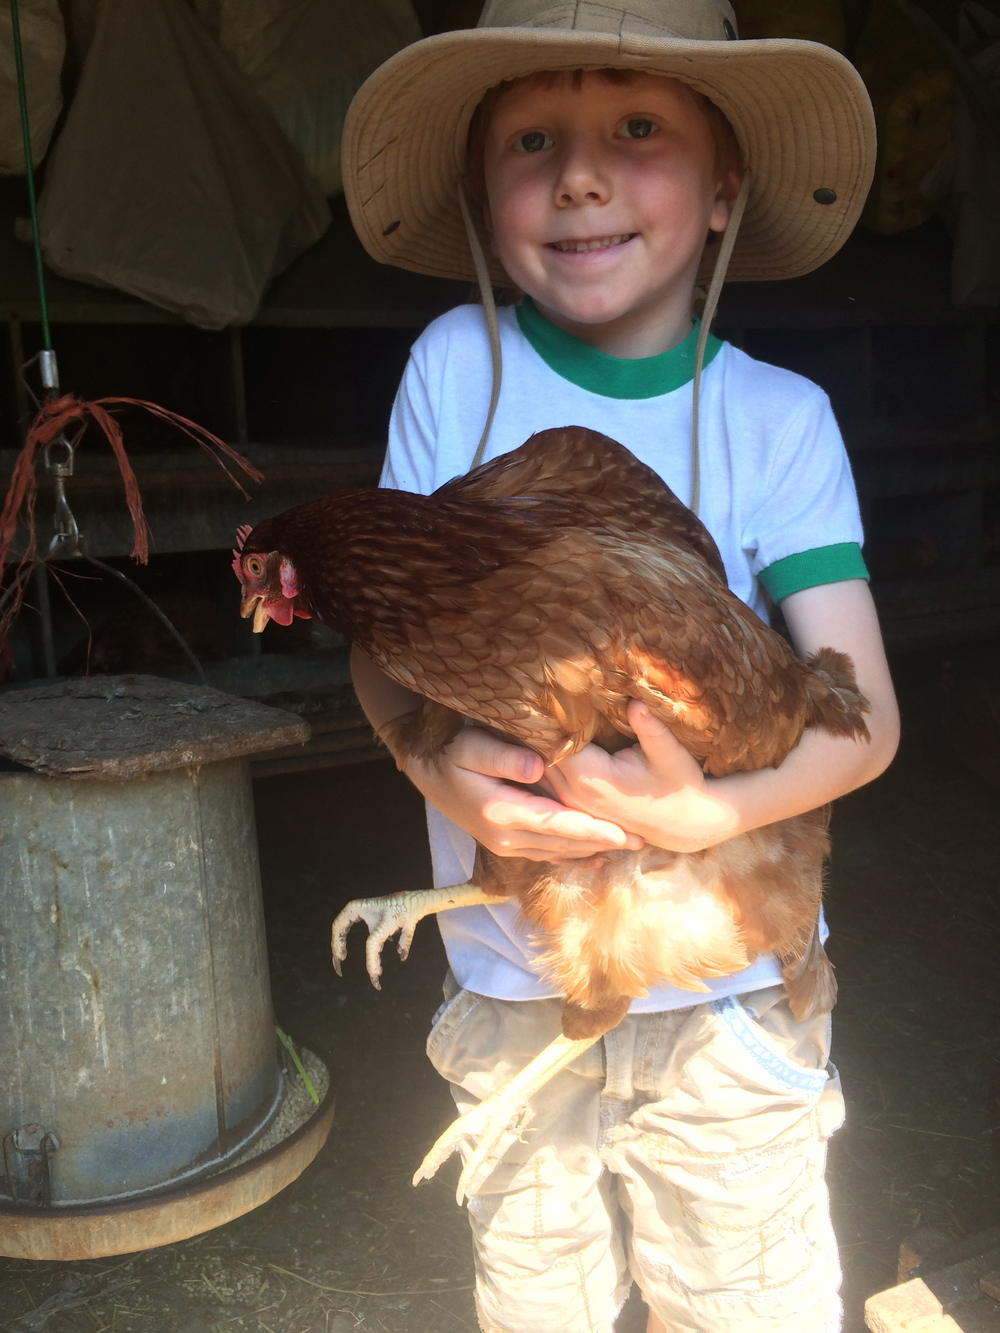 Are chickens safe for children?